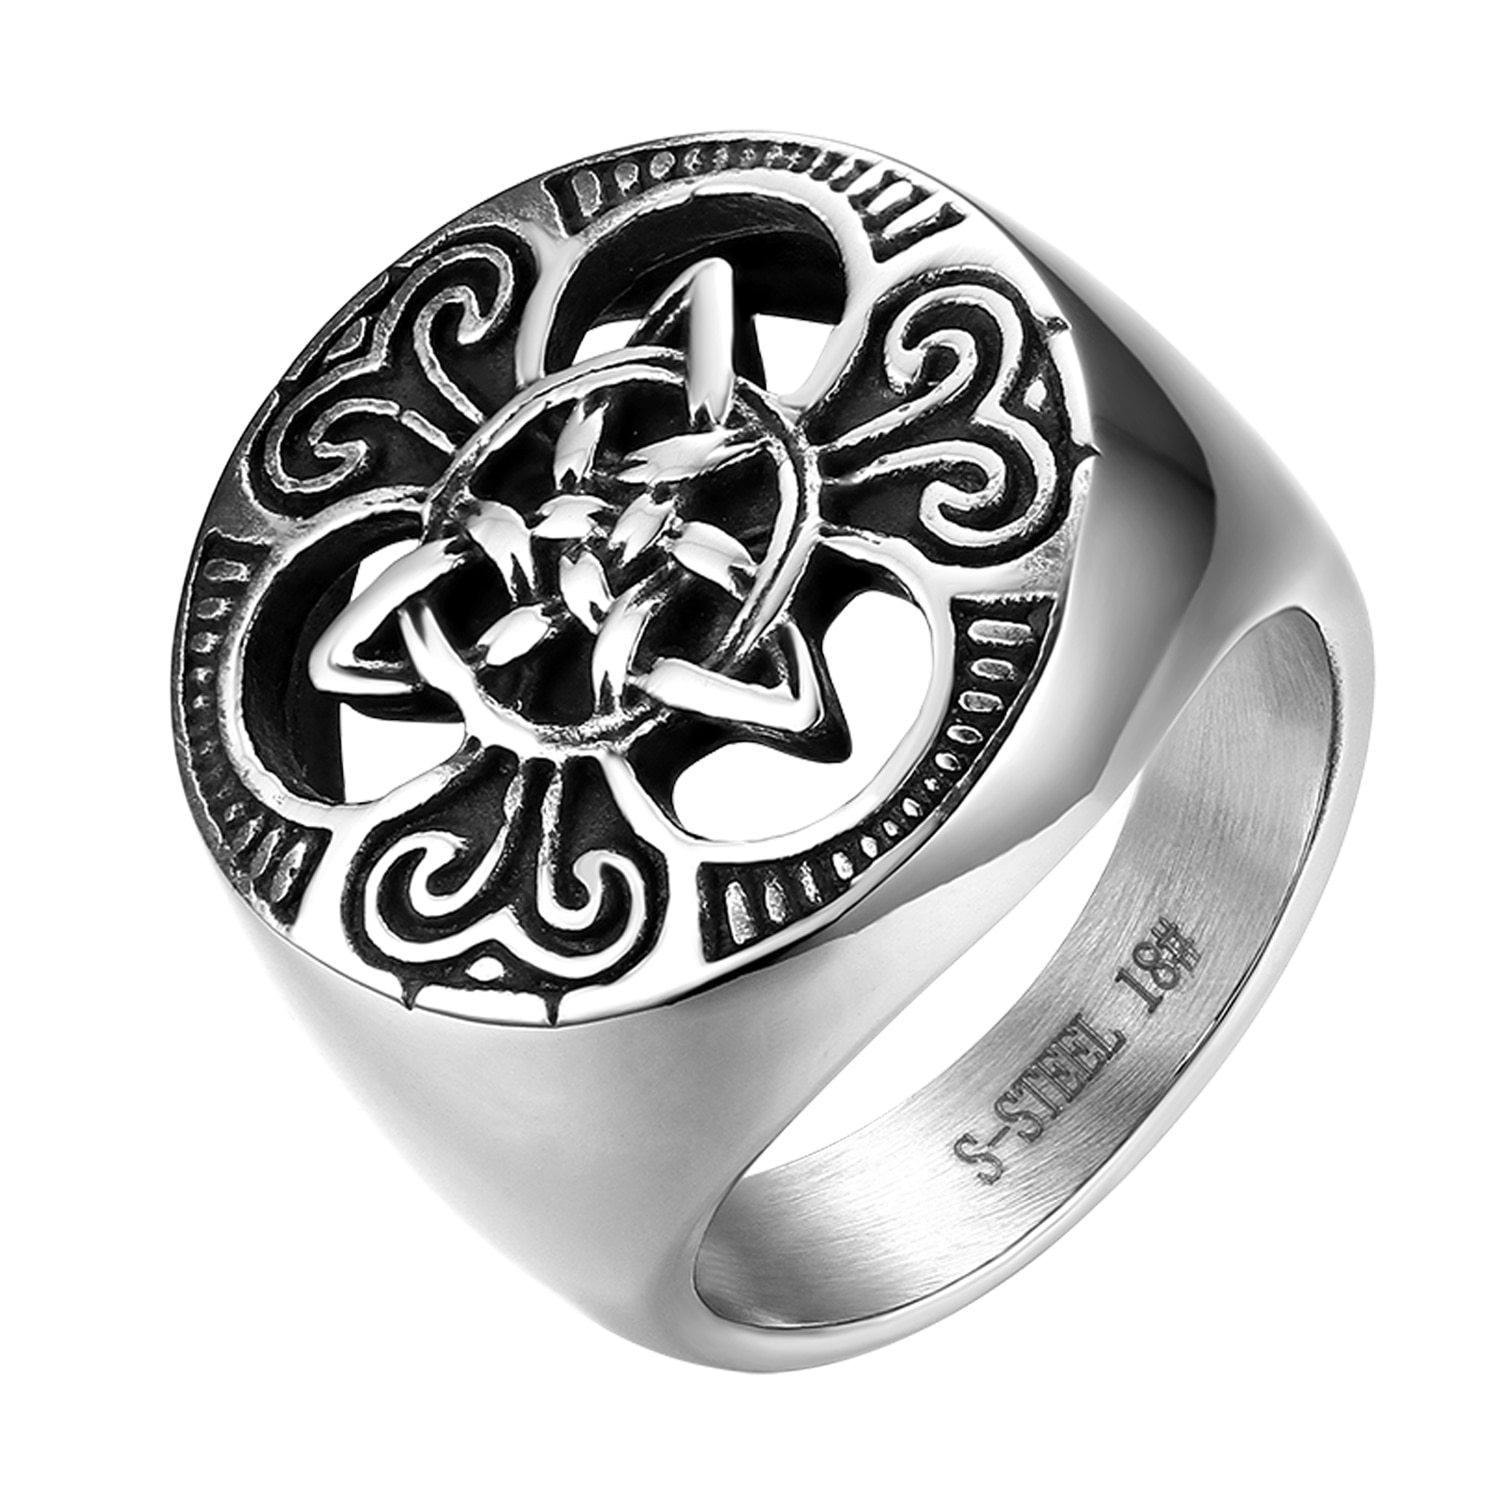 Men;s Stainless Steel Celtic Knot Ring Large Sizes U.S. shipping